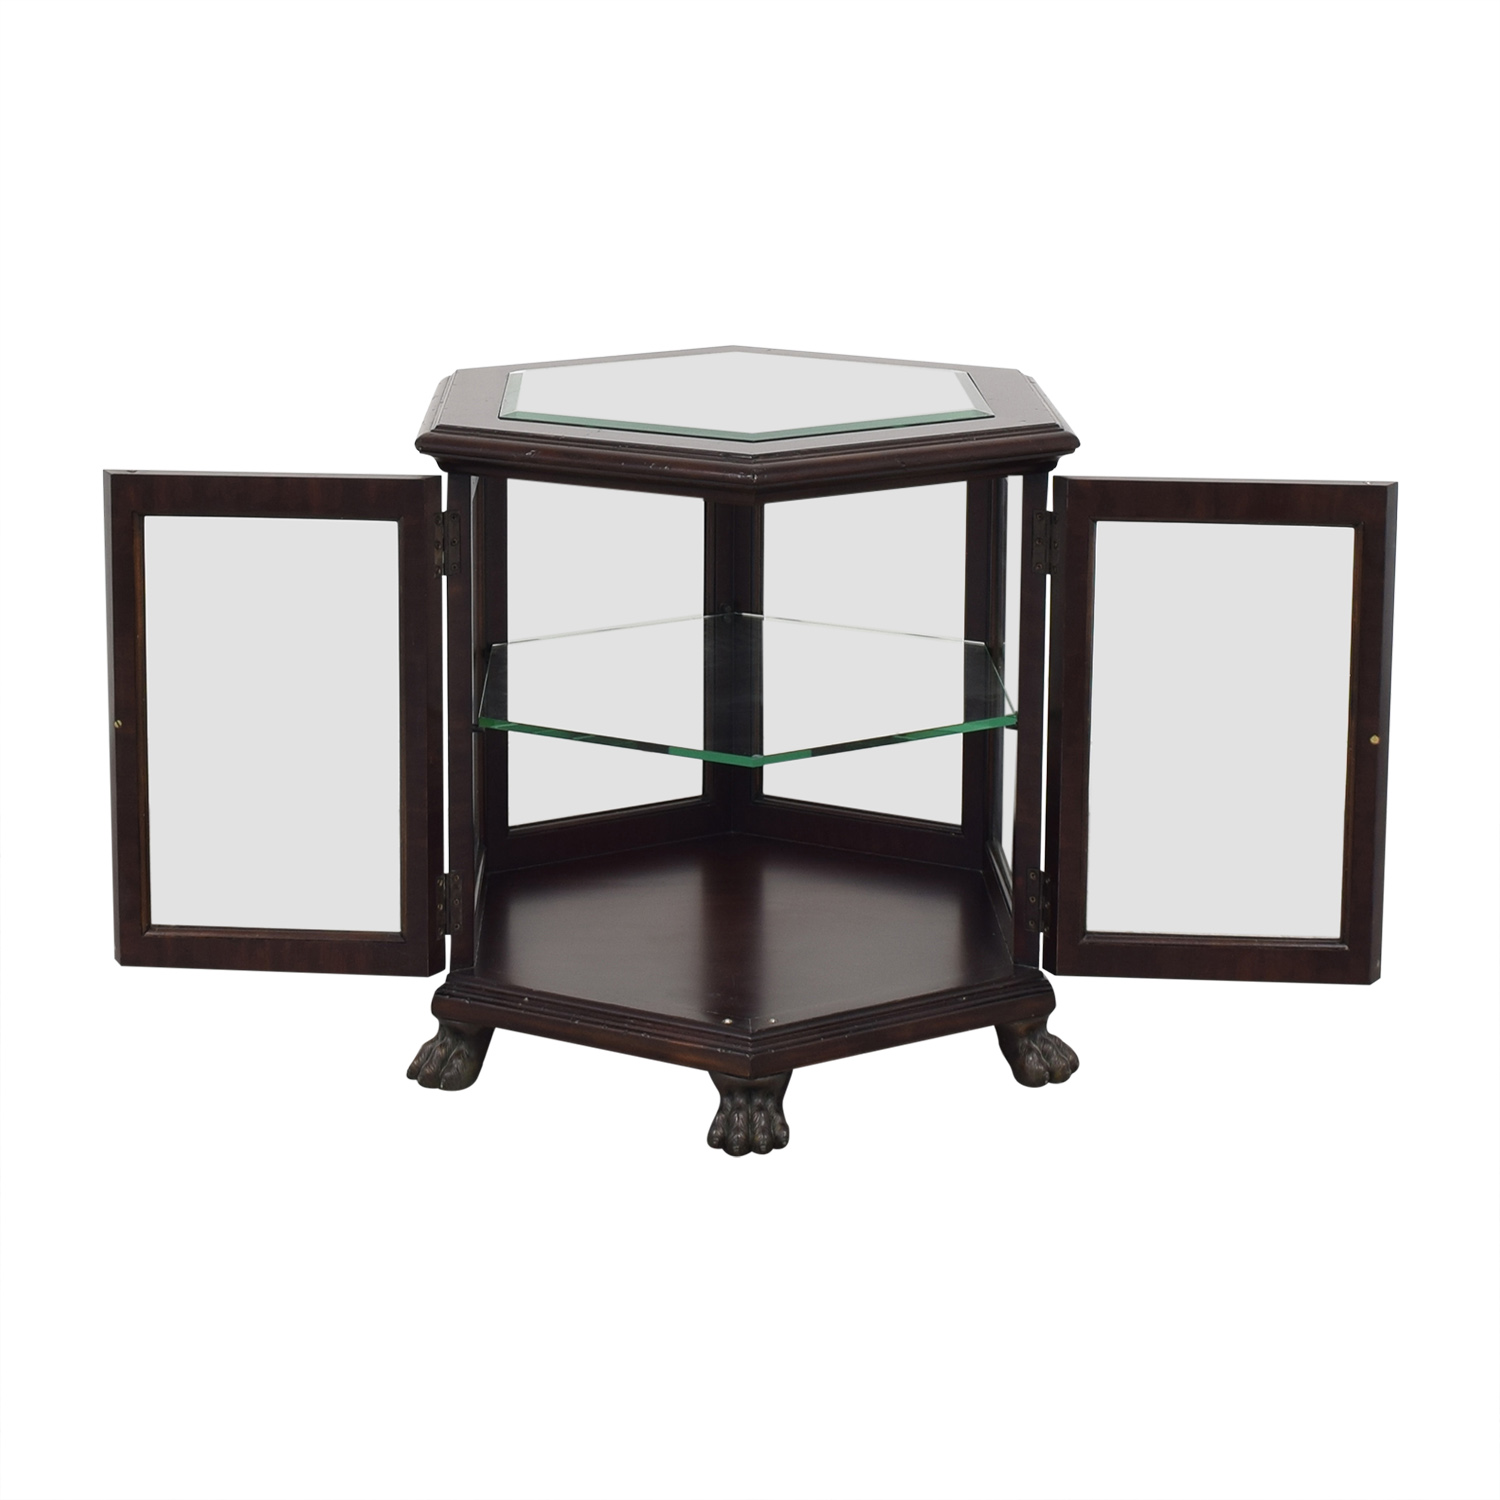 Thomasville Thomasville Hexagon End Table ma